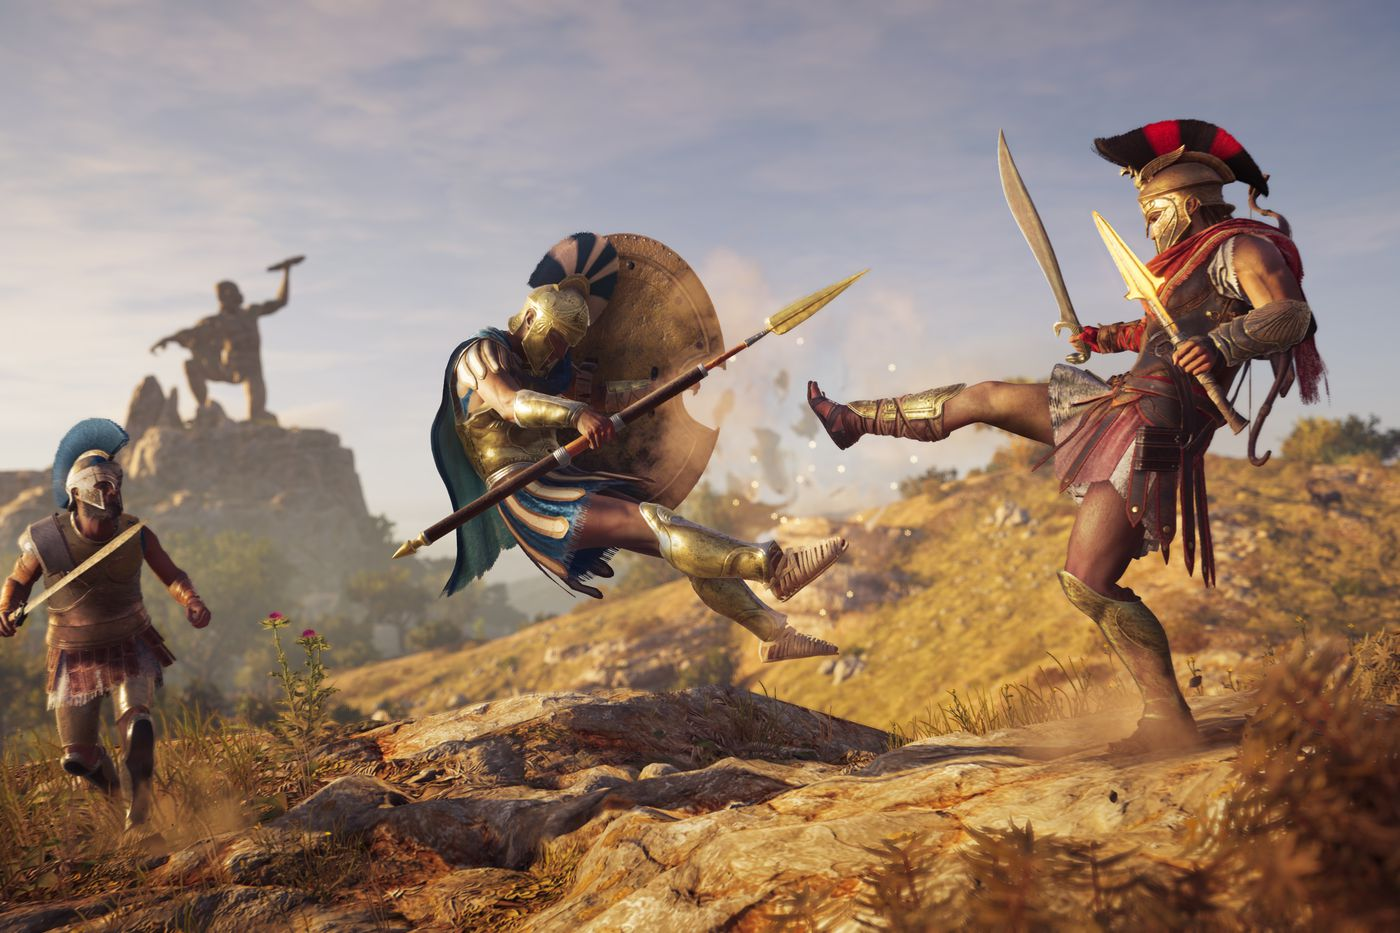 Assassin's Creed: Odyssey is even more of a traditional RPG